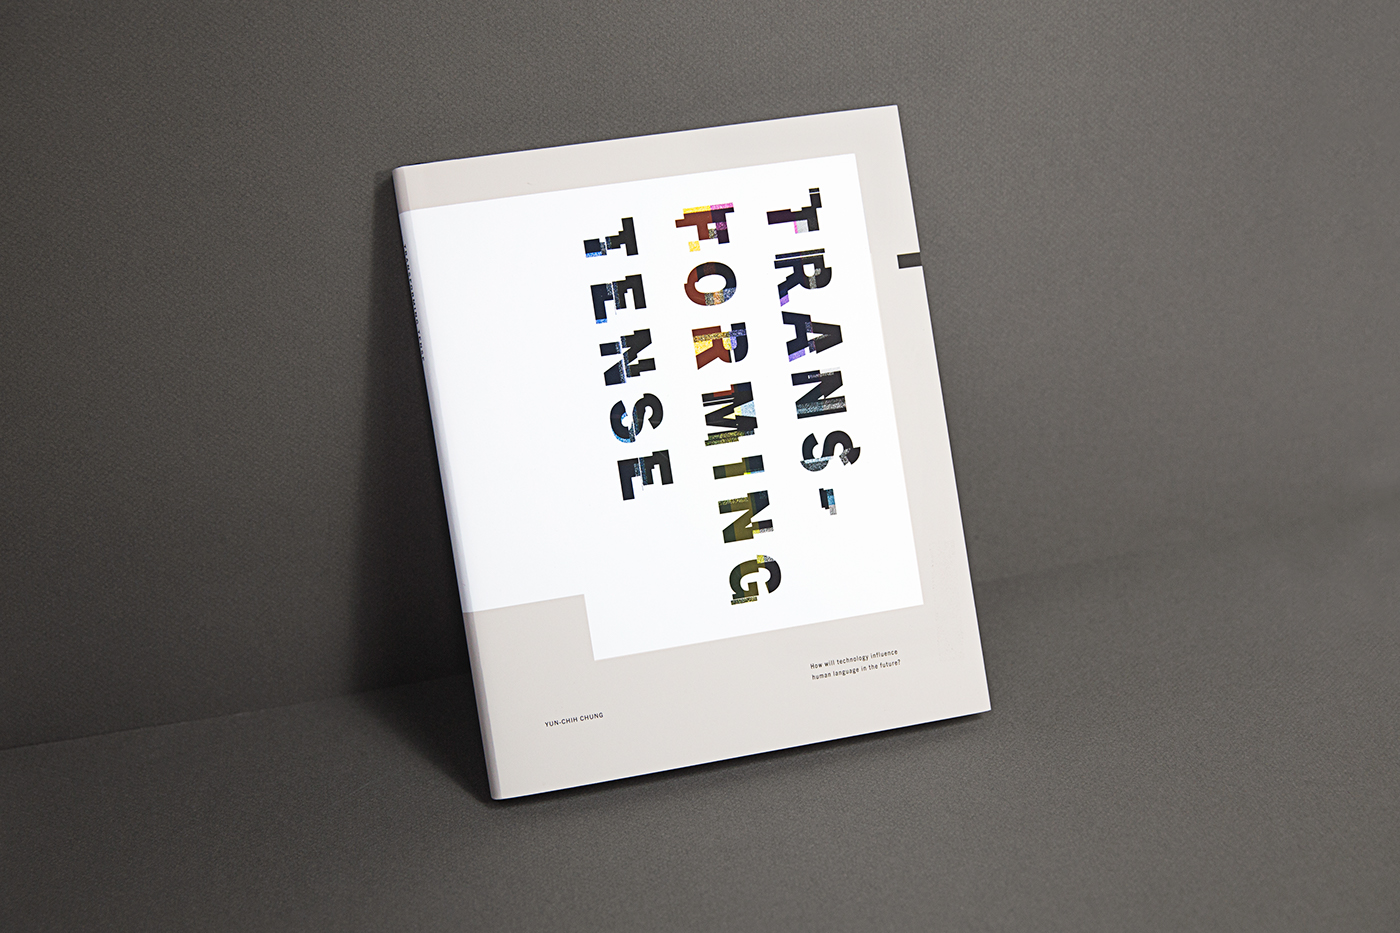 book cover language type media medium print transform Forms systems AAU future Layout Tense